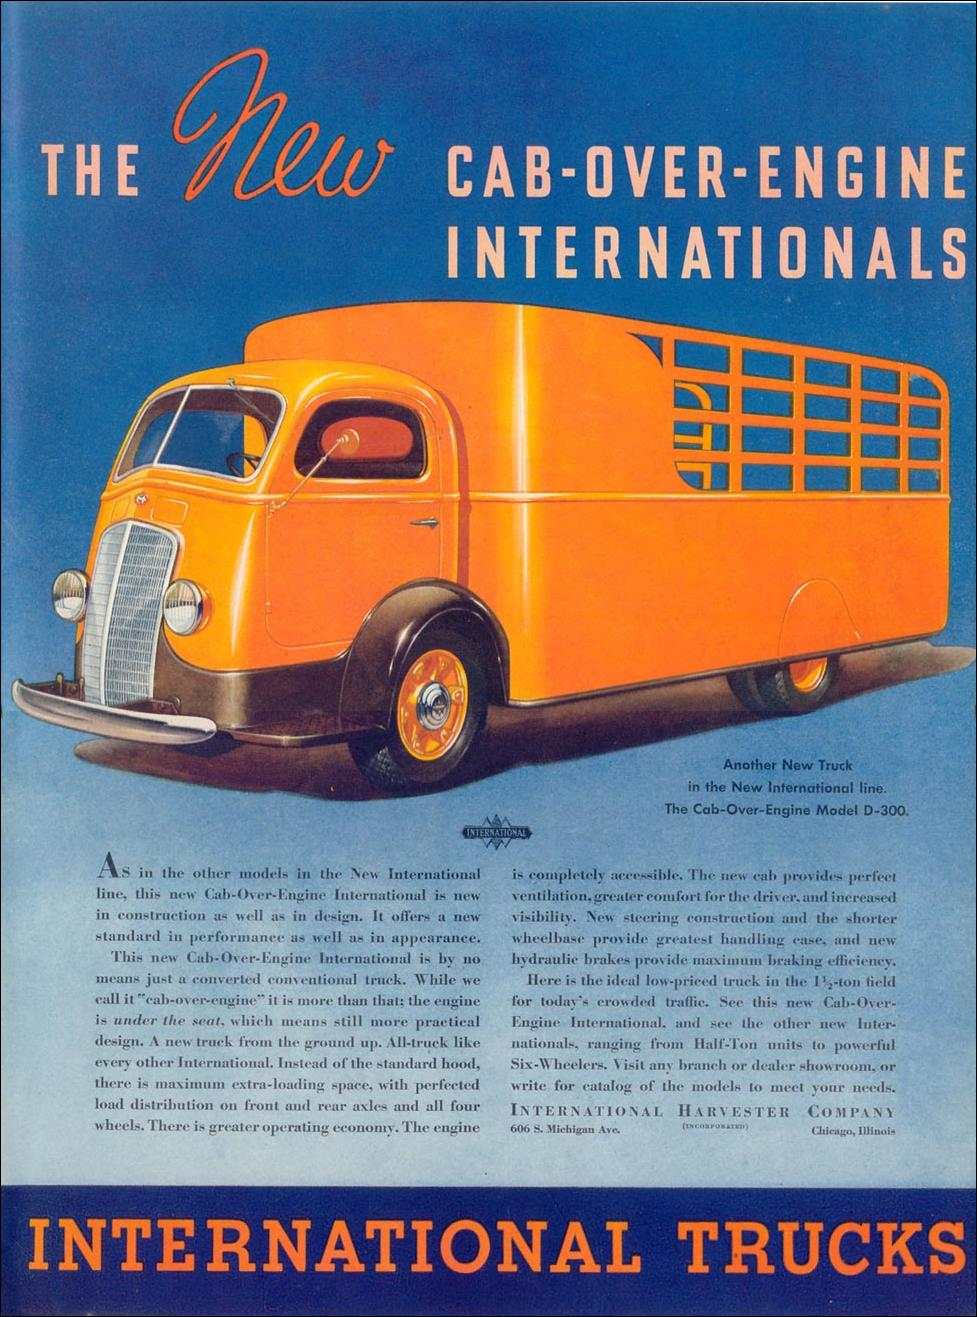 INTERNATIONAL CAB-OVER-ENGINE TRUCKS LIFE 07/26/1937